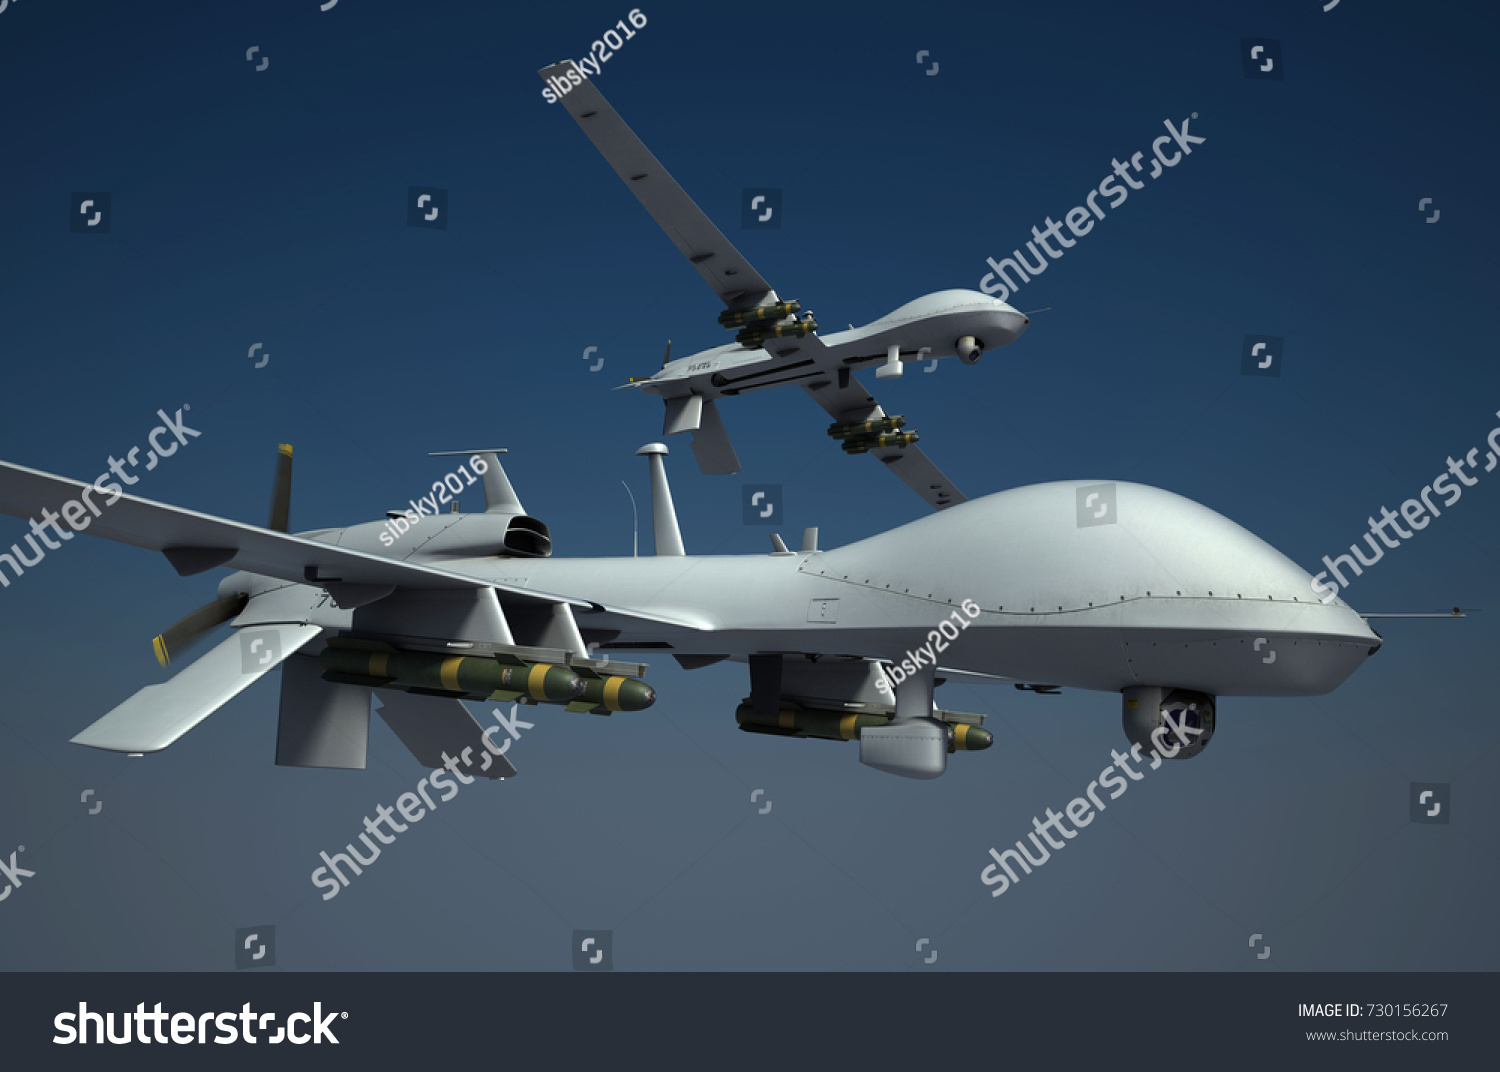 Military Surveillance Drones Armed With Hellfire Missiles Flying High 3d Render